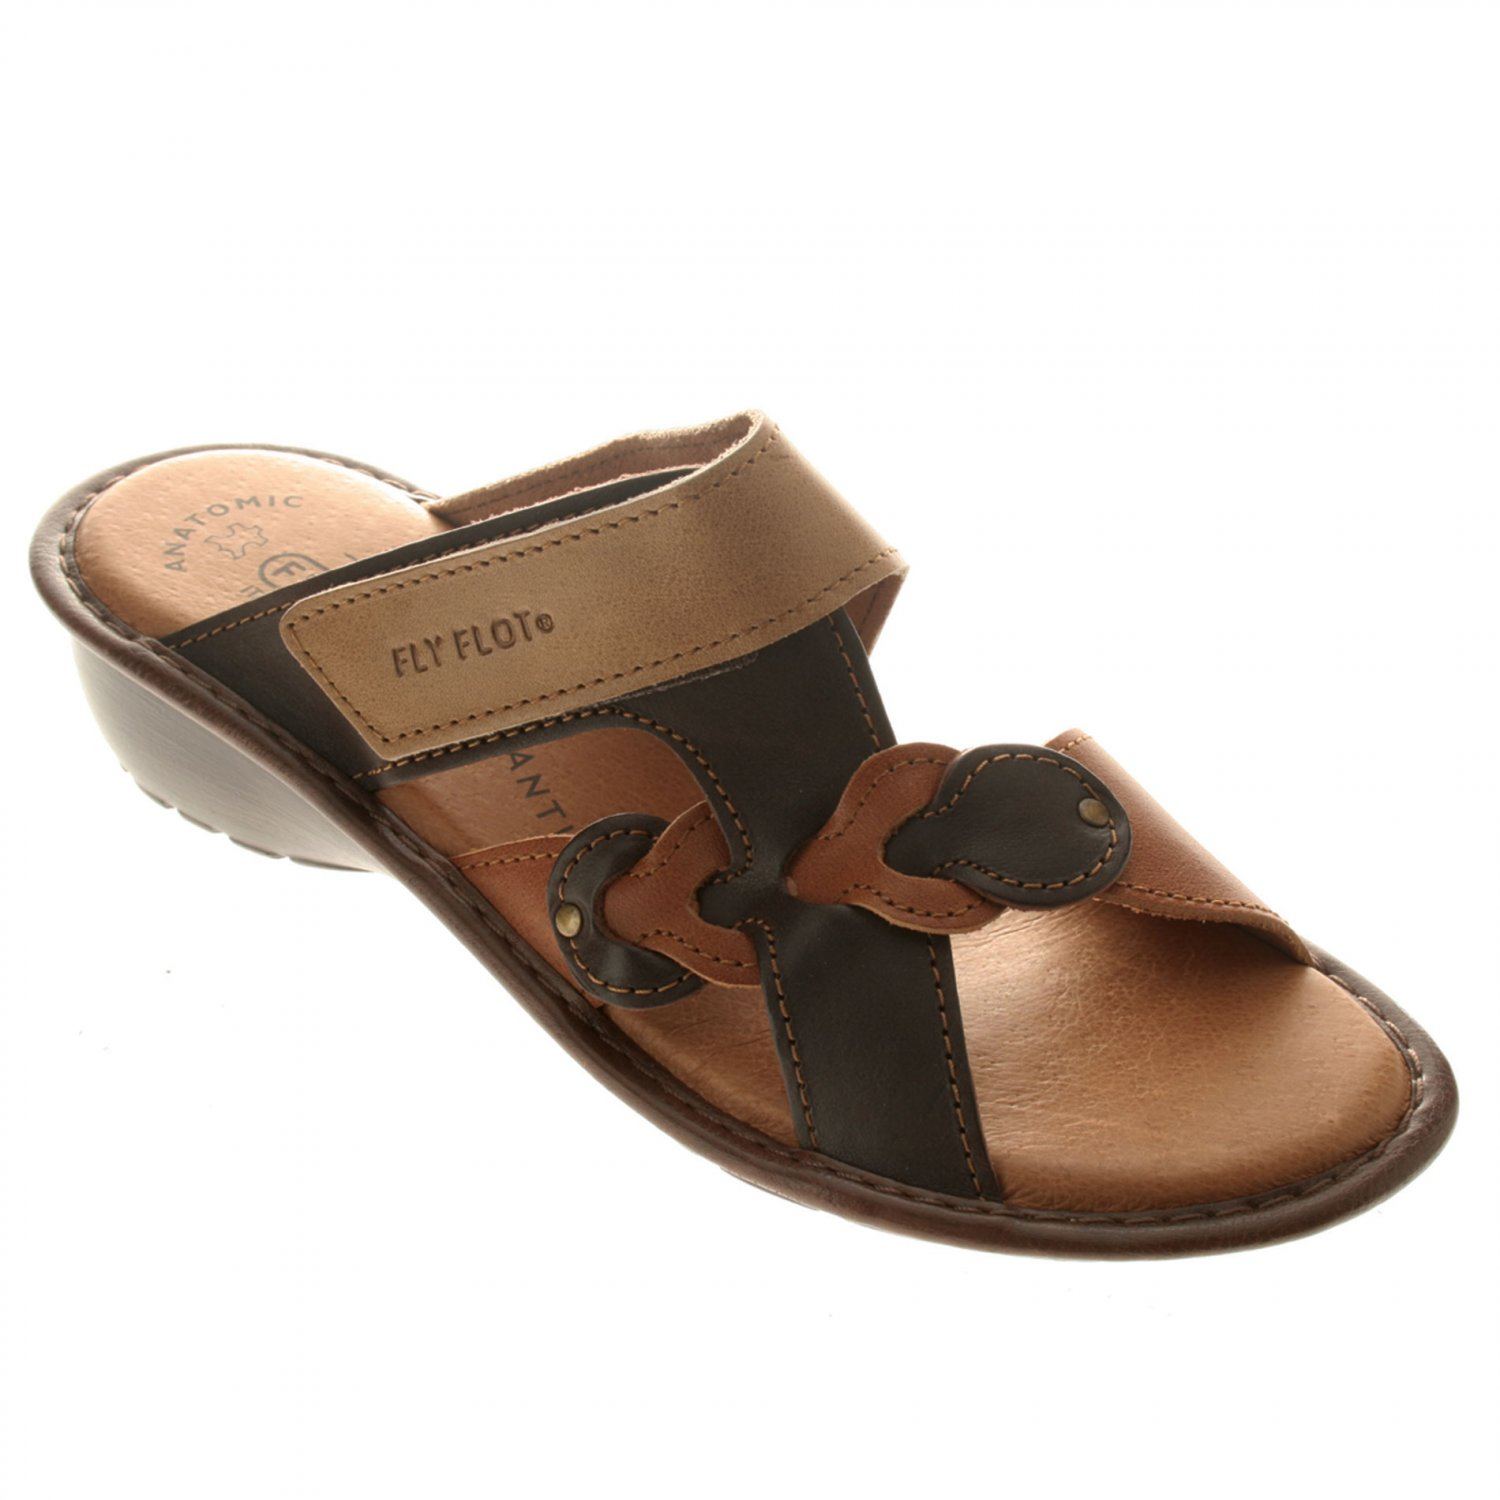 FLY FLOT LECCE Sandals Shoes All Sizes & Colors $79.99